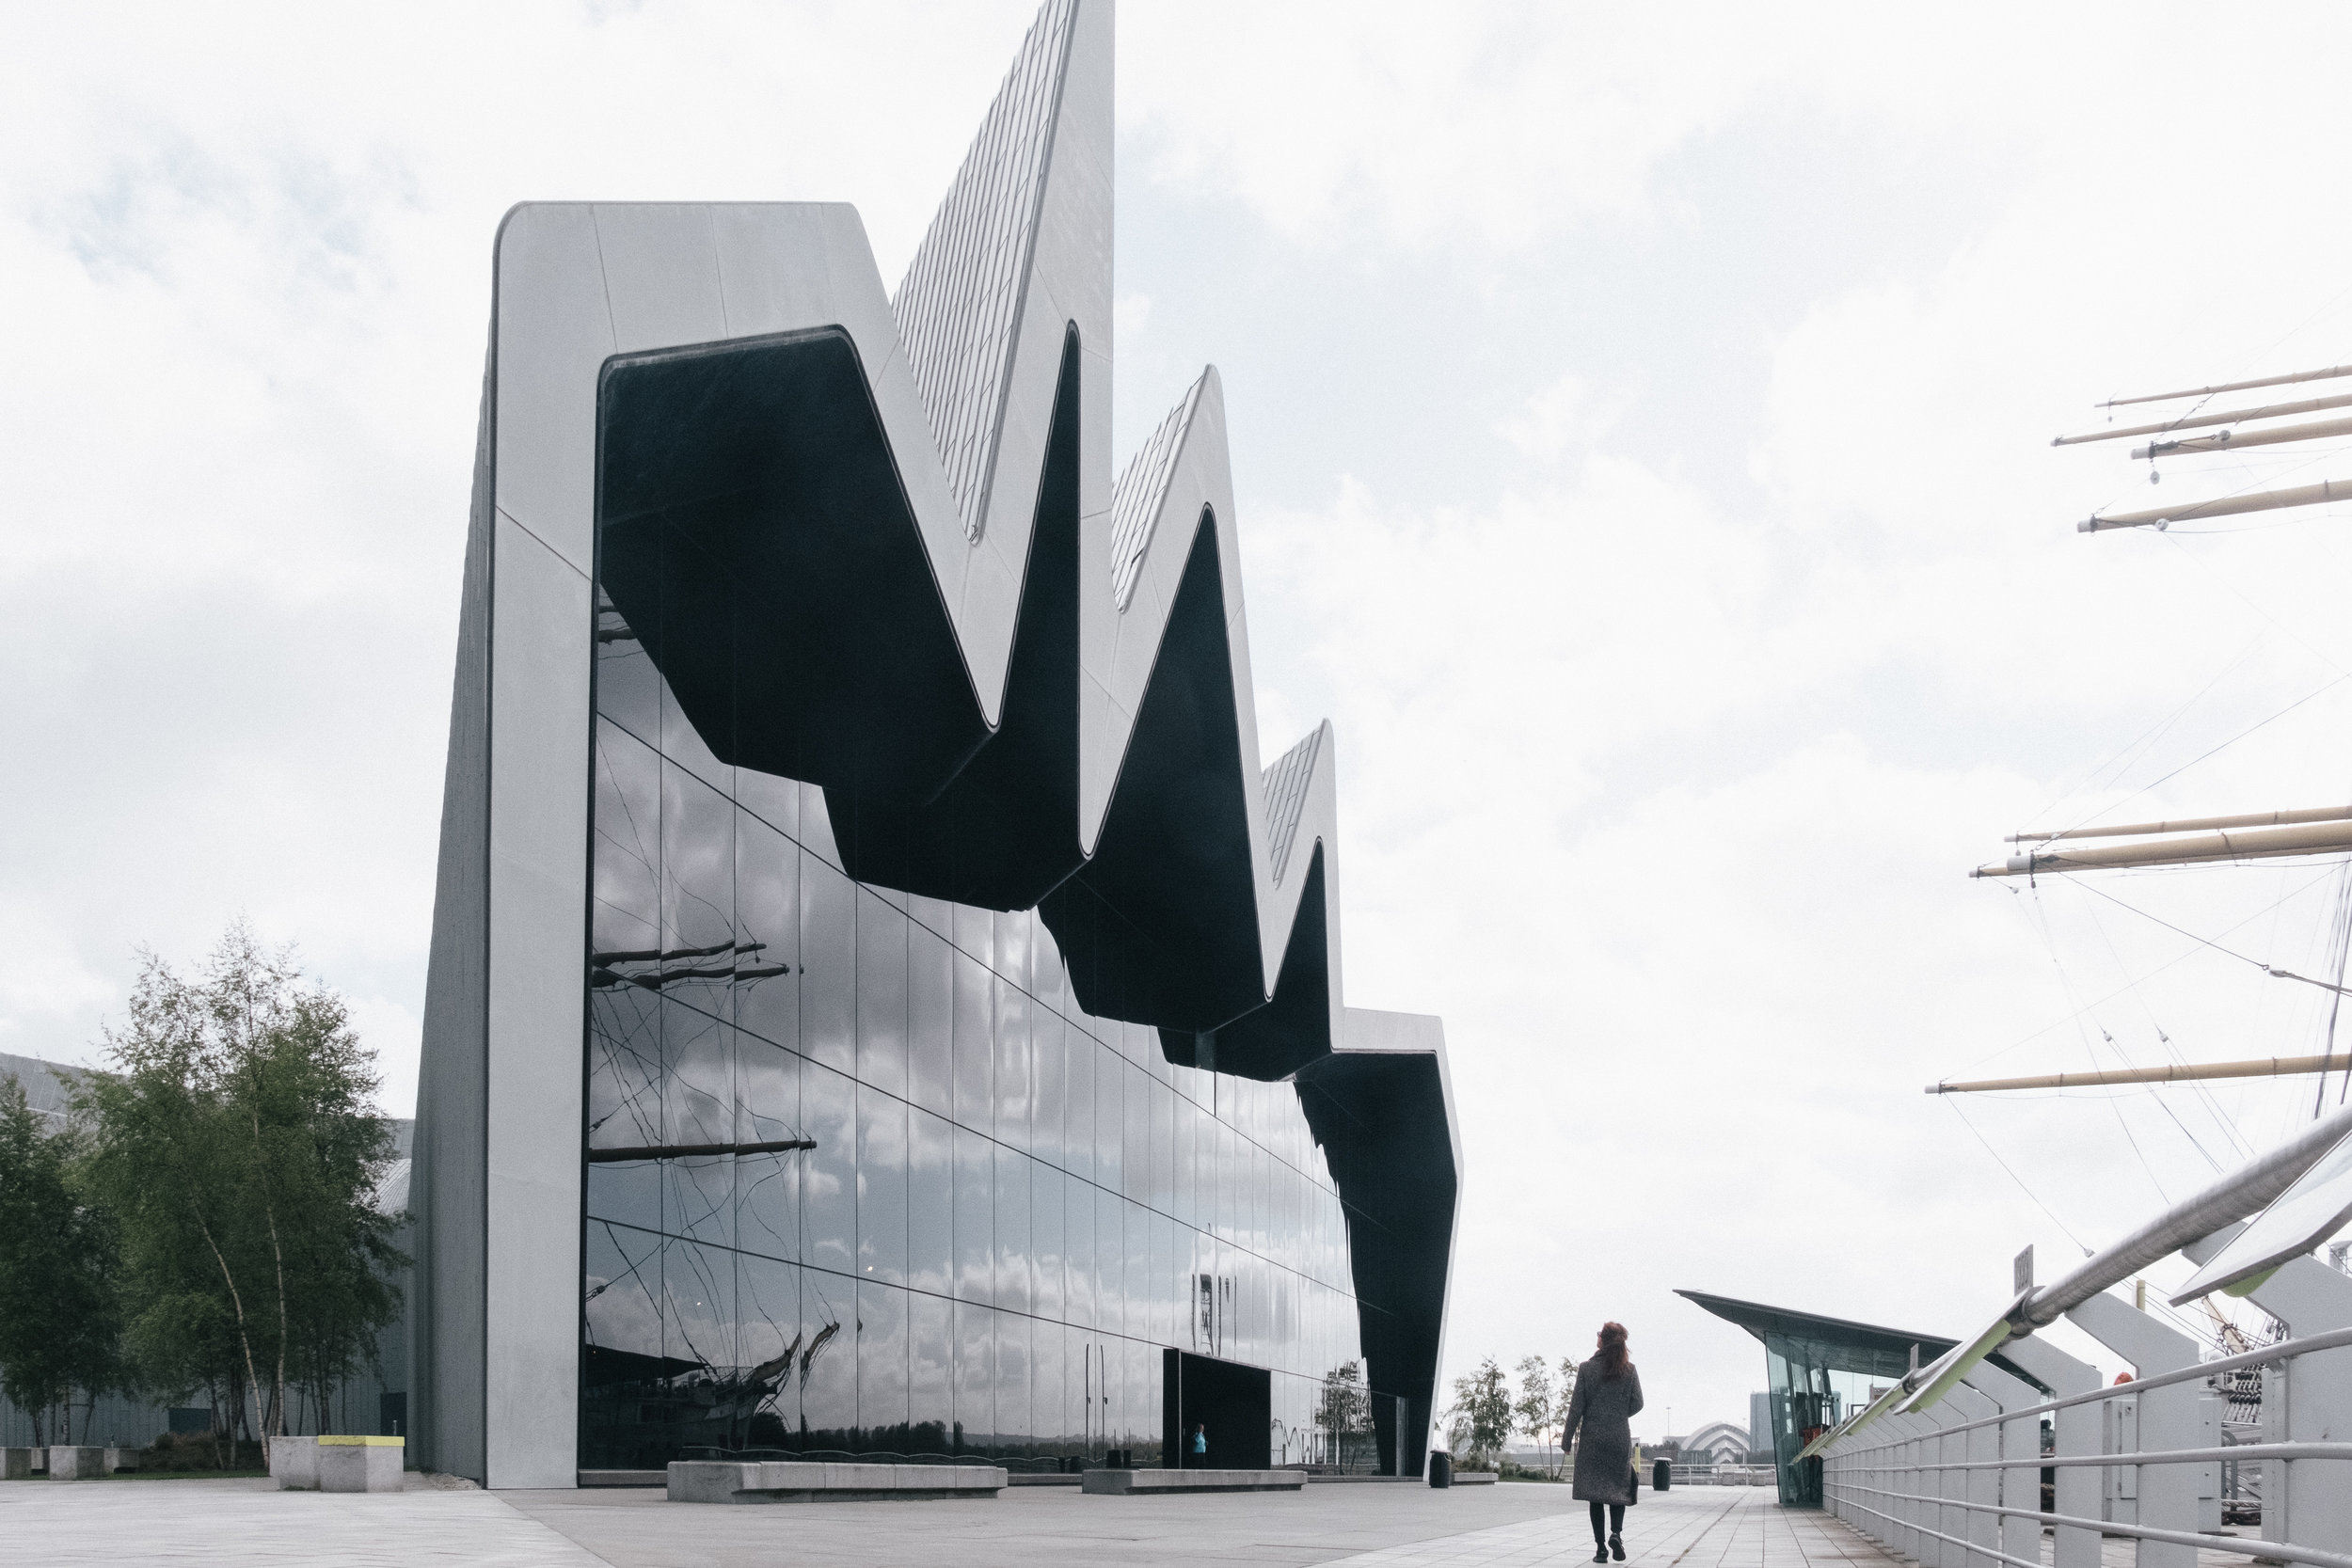 Extravagant, contemporary, genius- that's the Riverside Museum by Zaha Hadid, marked [1] on a map